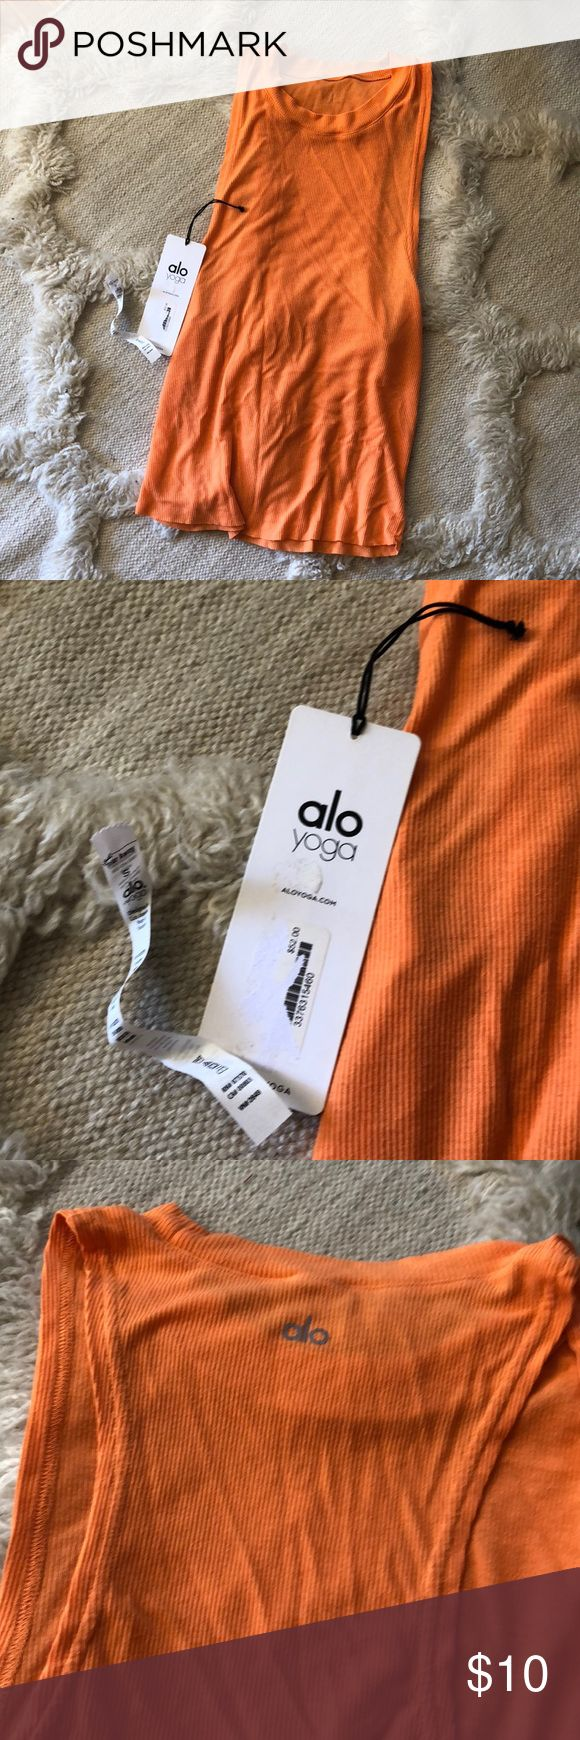 ALO Yoga Heat Wave Tank Orange Size S Worn a few times only! ALO Yoga Tops